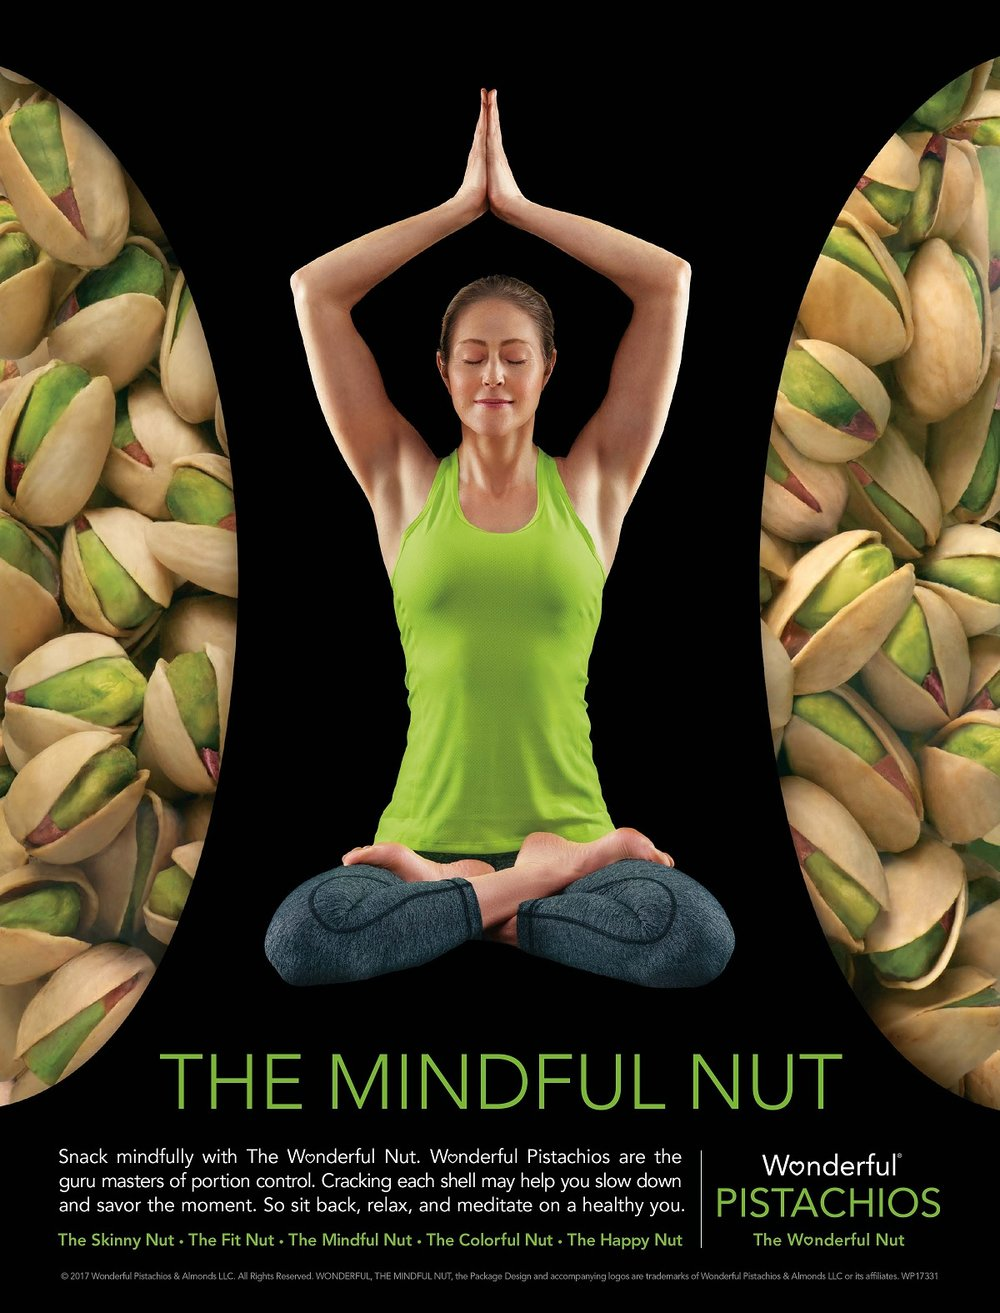 Wonderful-Pistachios-Mindful-Nut.jpg